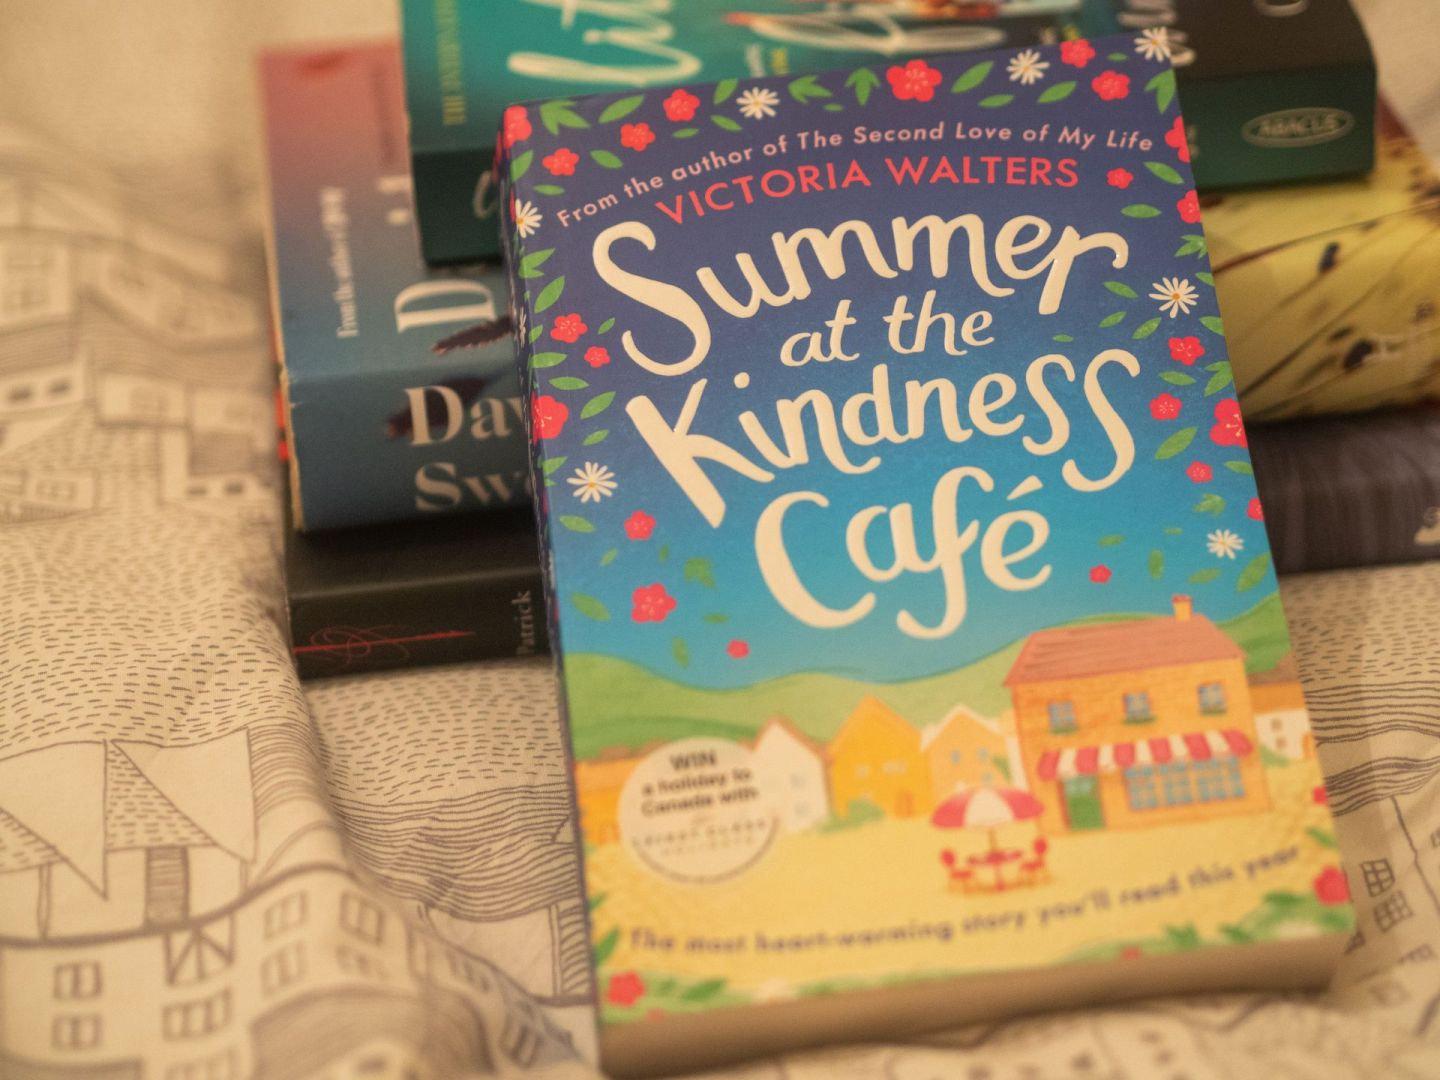 Summer at the Kindness Cafe by Victoria Walters